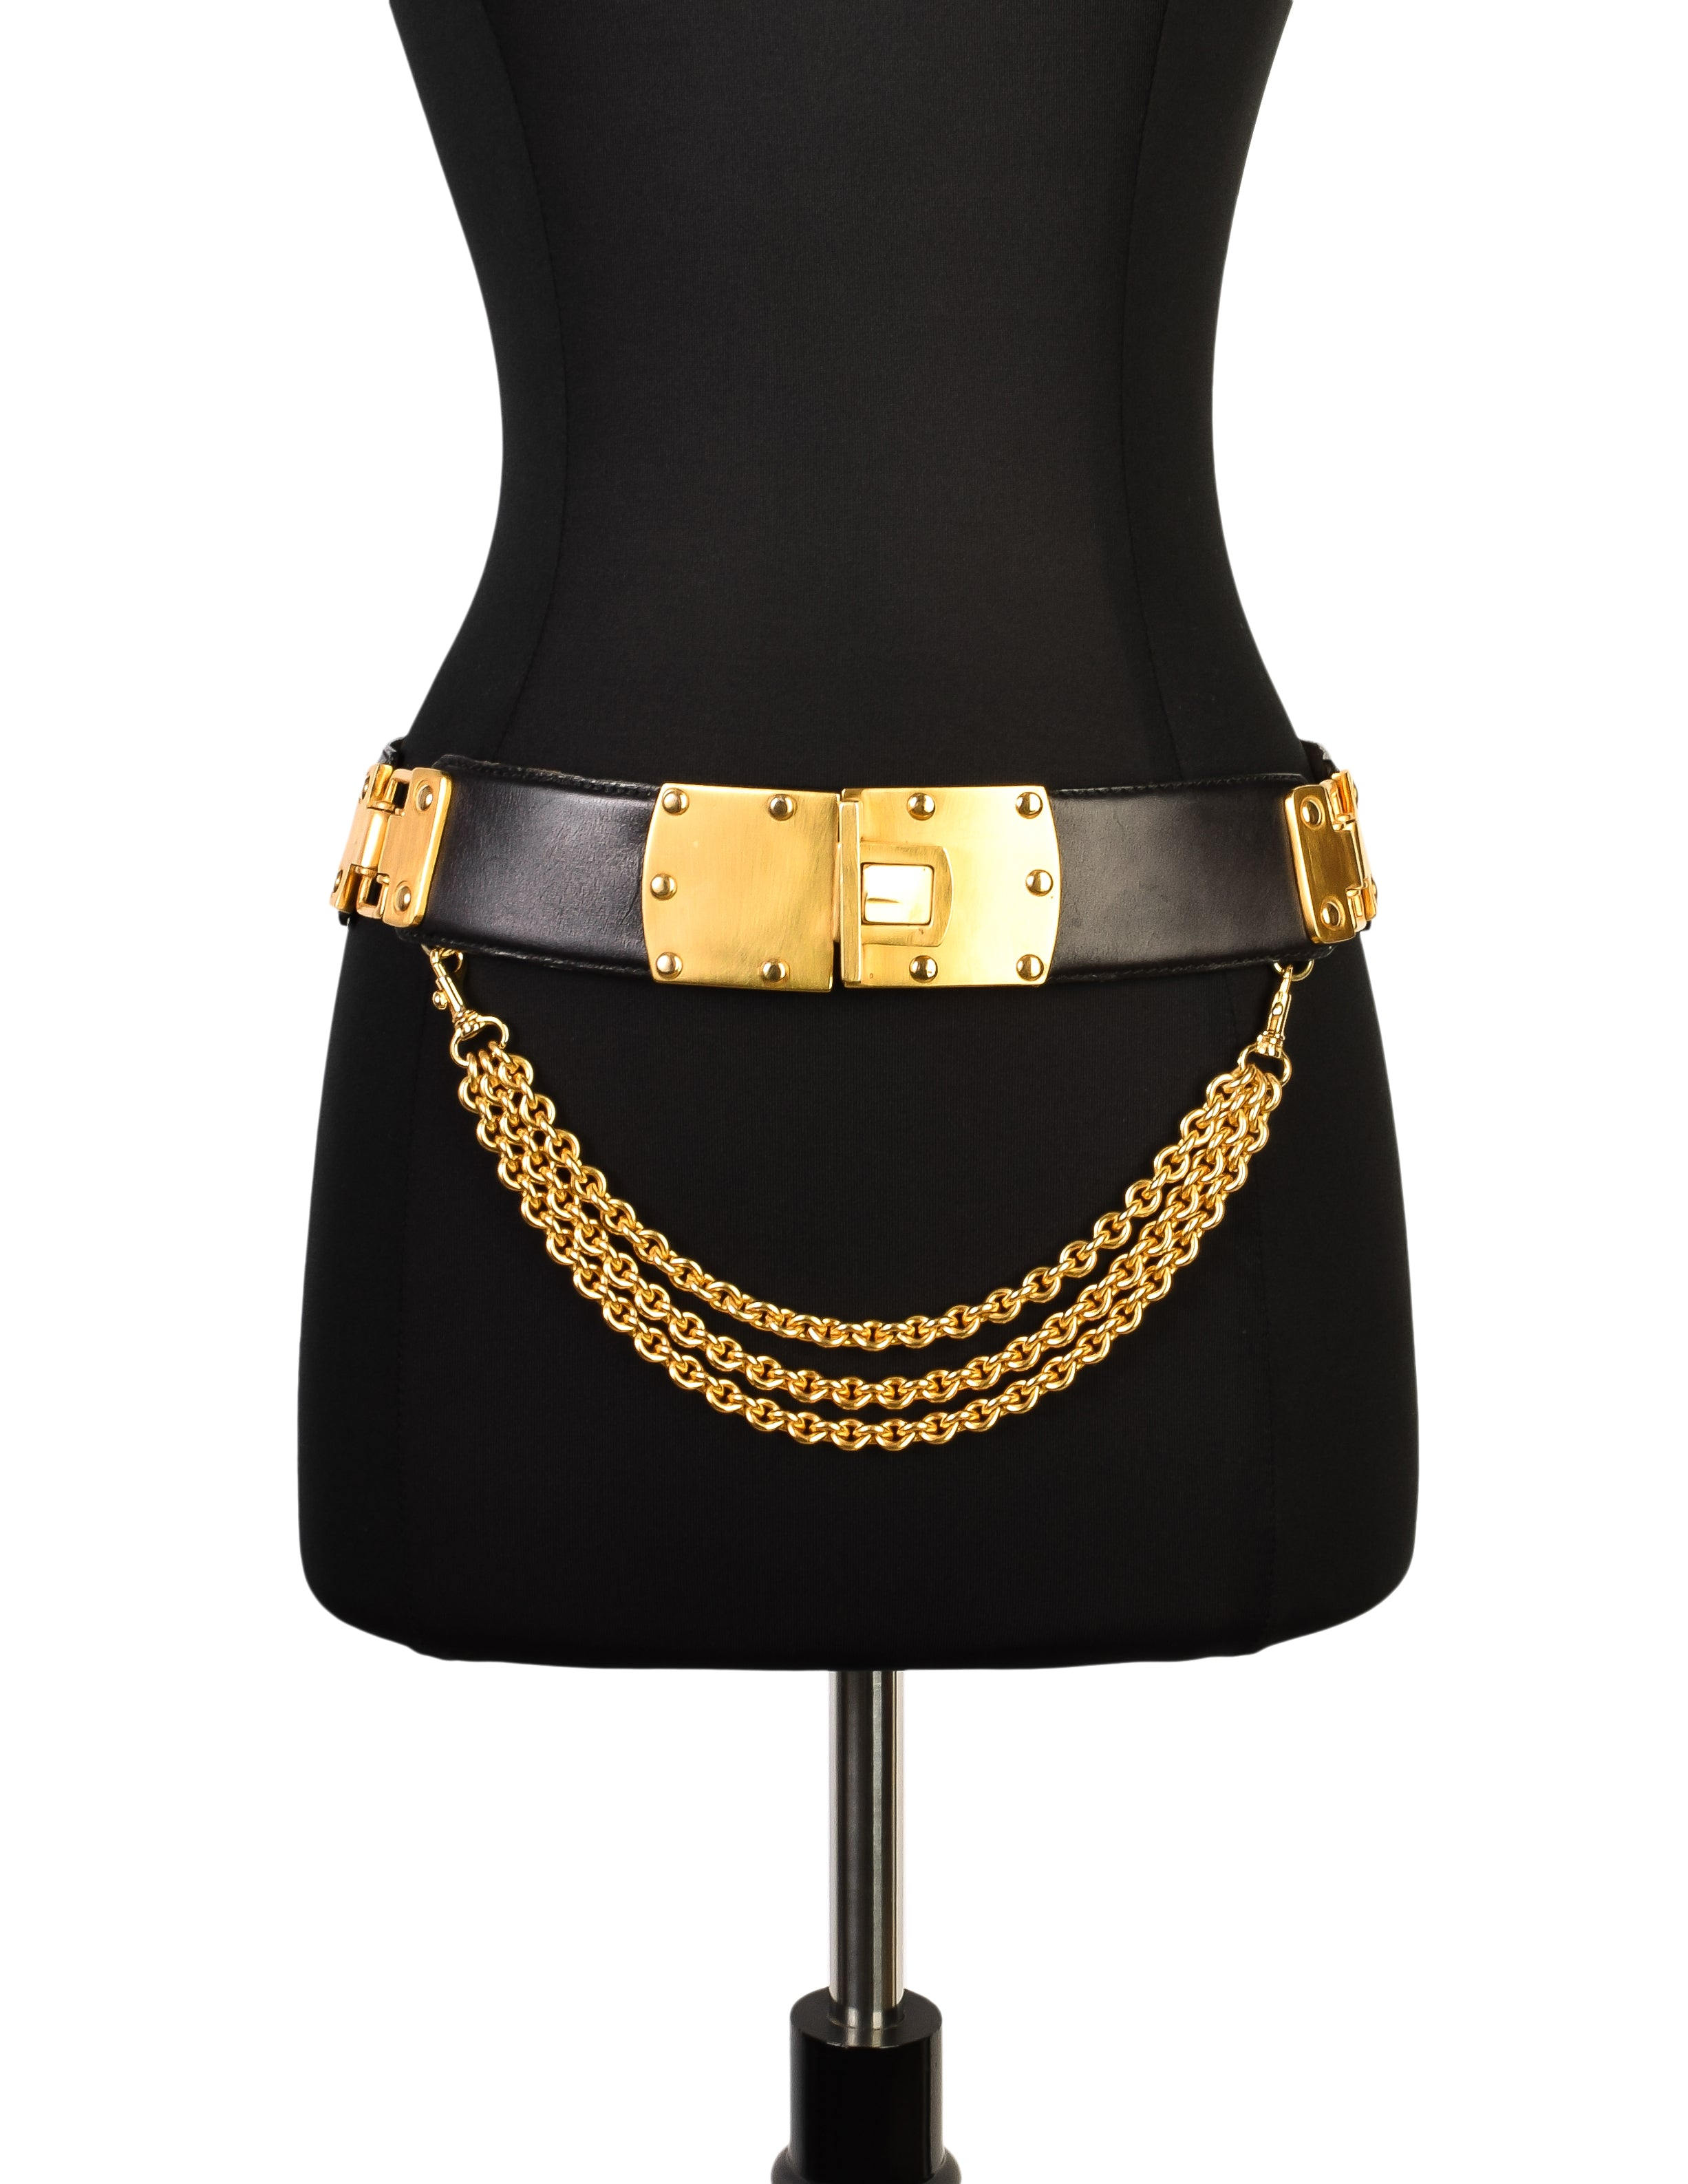 Donna Karan Vintage Black Leather Gold Plaque Chain Belt